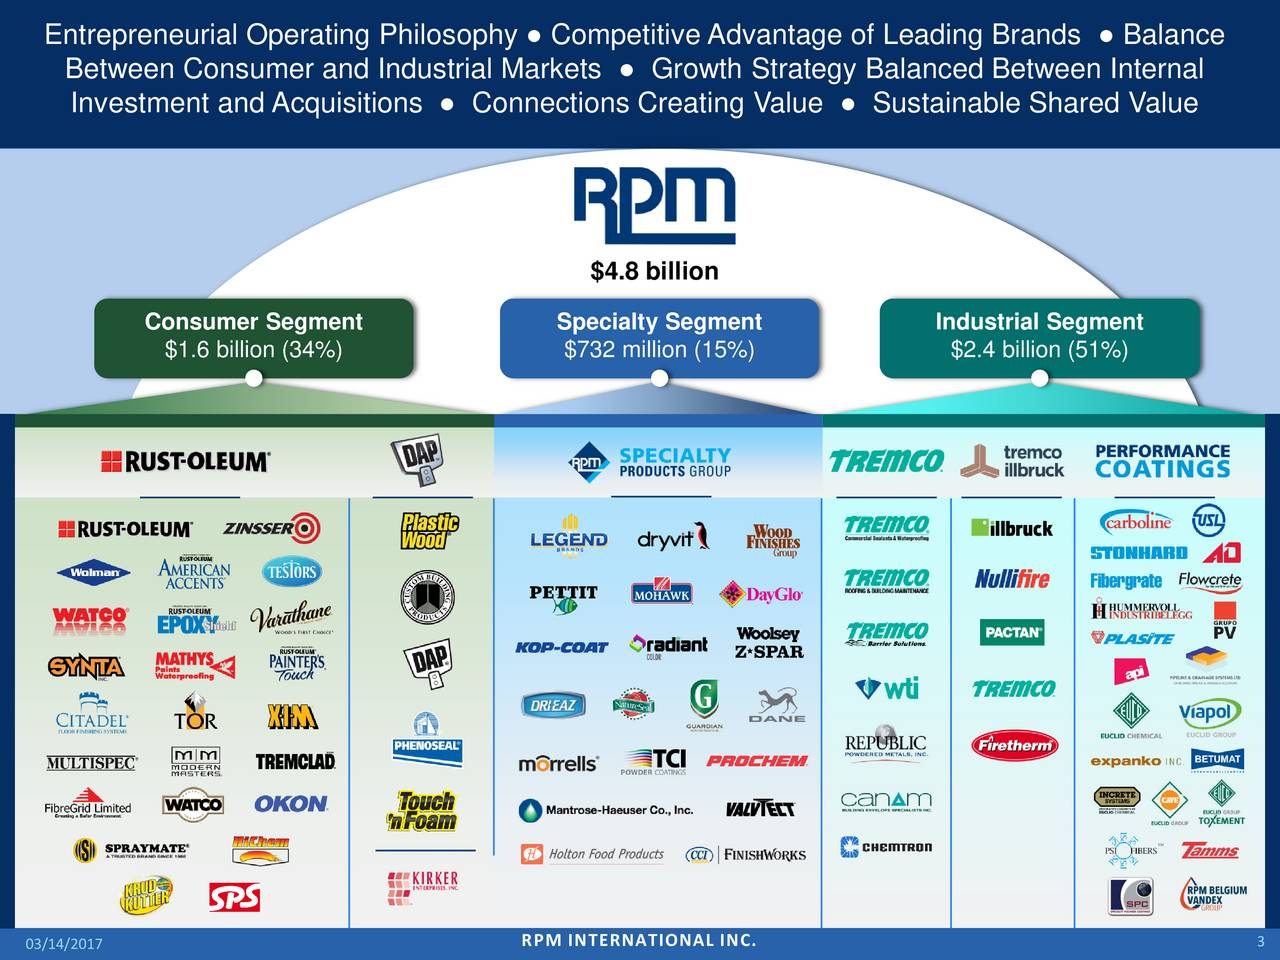 Between Consumer and Industrial Markets  Growth Strategy Balanced Between Internal Investment and Acquisitions  Connections Creating Value  Sustainable Shared Value $4.8 billion Consumer Segment Specialty Segment Industrial Segment $1.6 billion (34%) $732 million (15%) $2.4 billion (51%) 03/14/2017 RPM INTERNATIONAL INC. 3